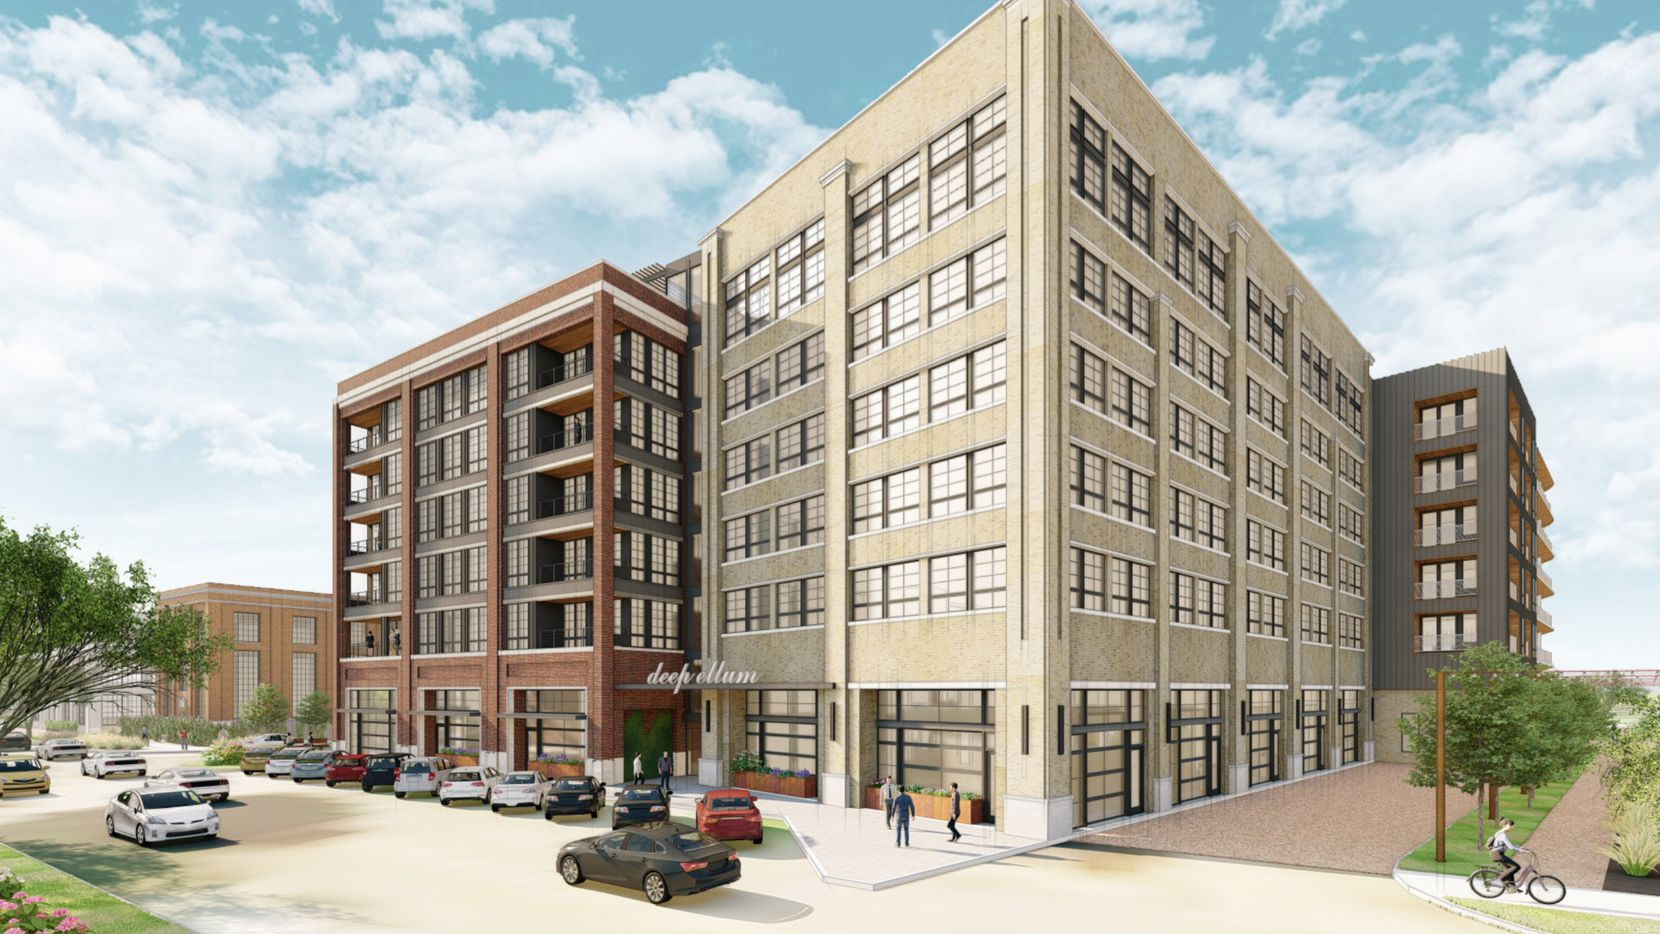 The eight-story Willow apartment building is planned on the eastern edge of Deep Ellum.